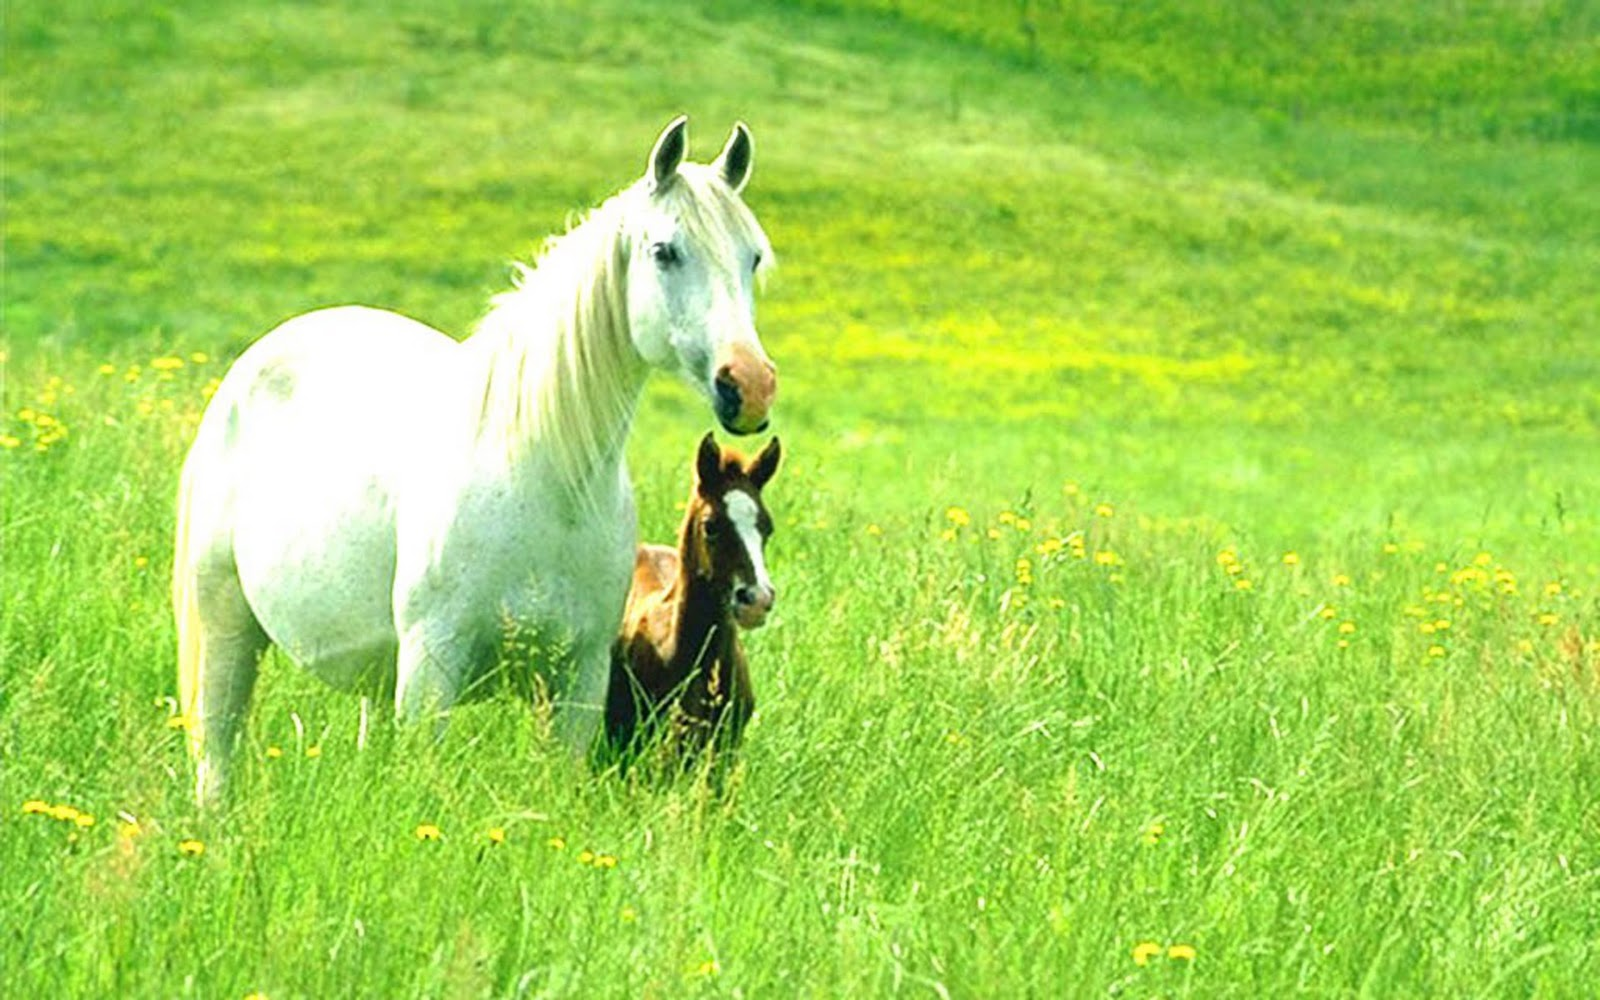 Beauty Full Horse Wallpapers And Animal Wallpapers 1600x1000